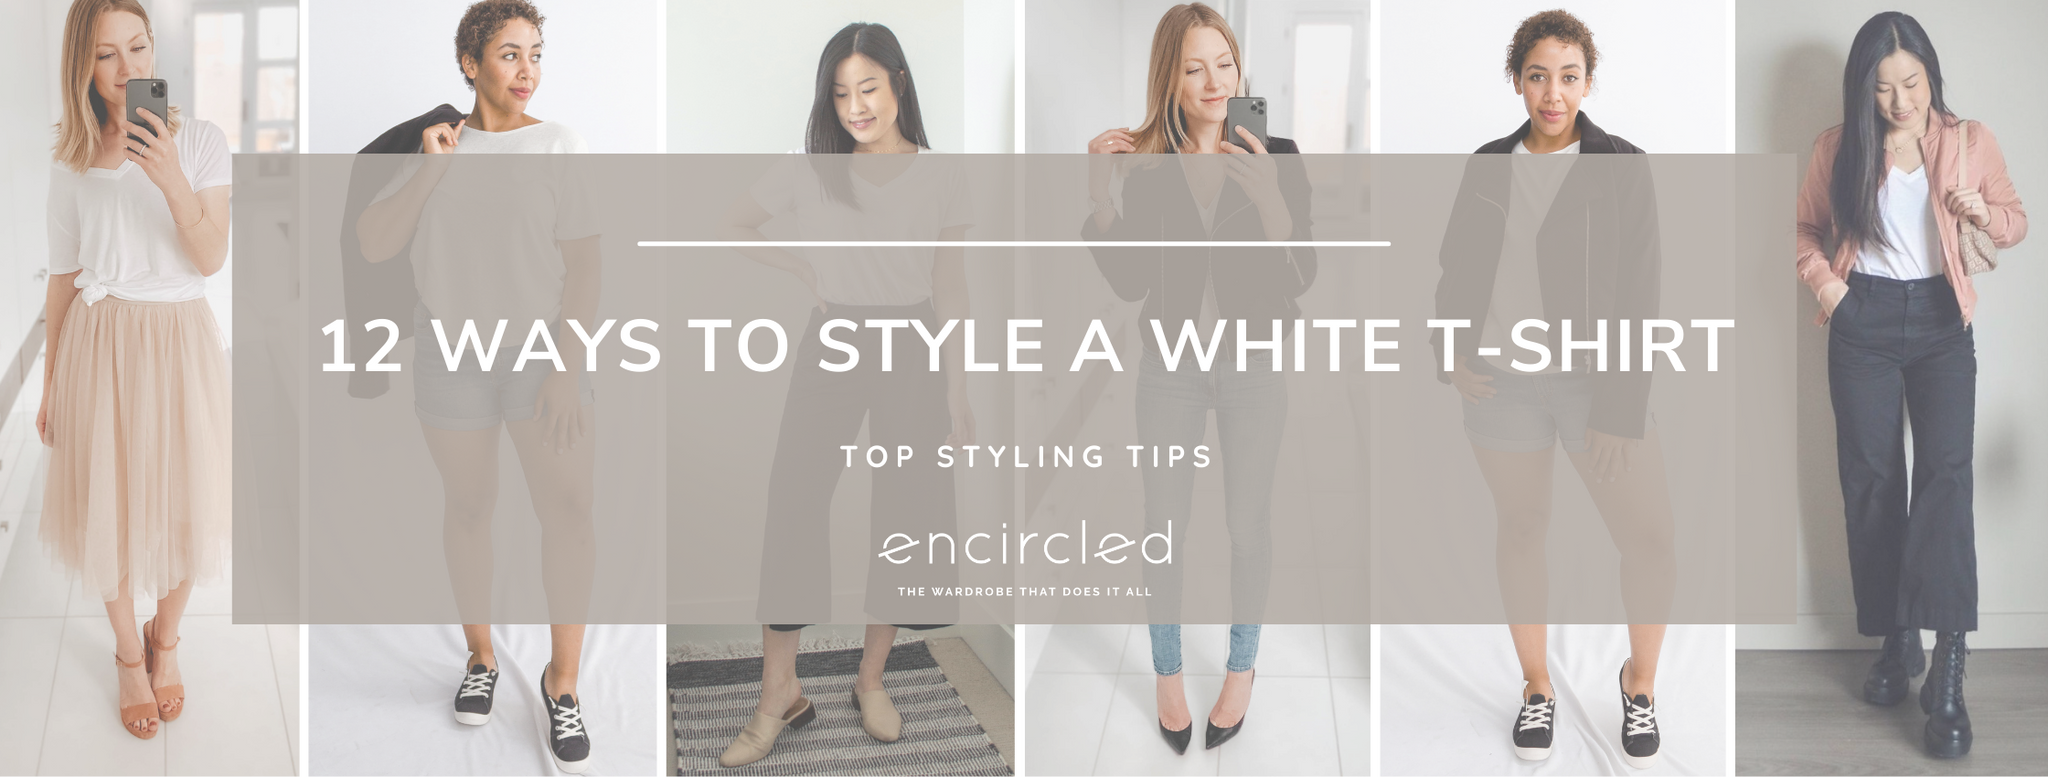 12 ways to style a white t-shirt